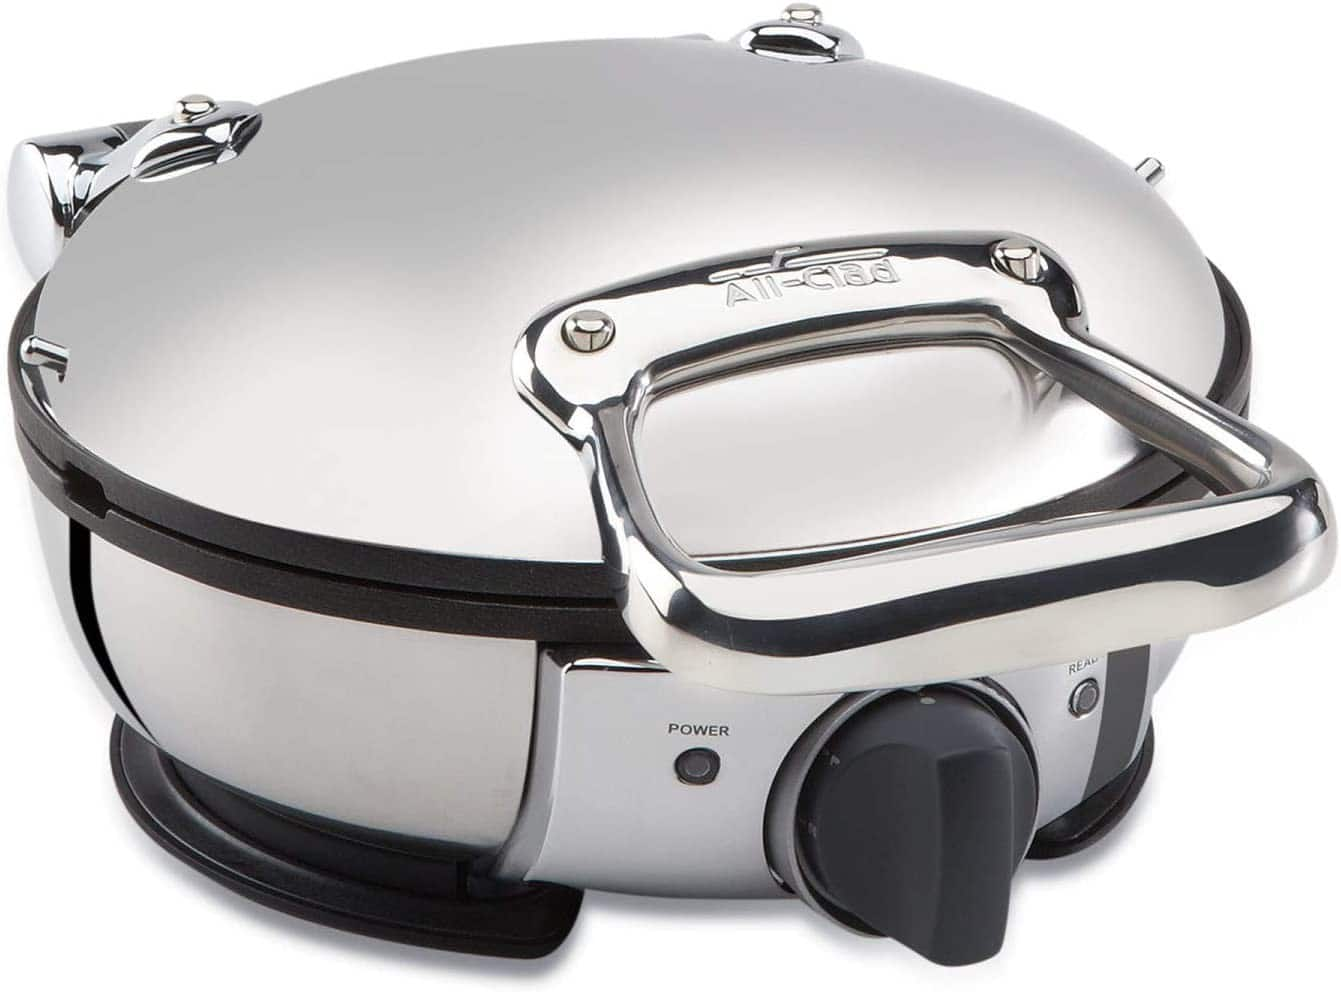 All-Clad WD700162 Stainless Steel Waffle Maker